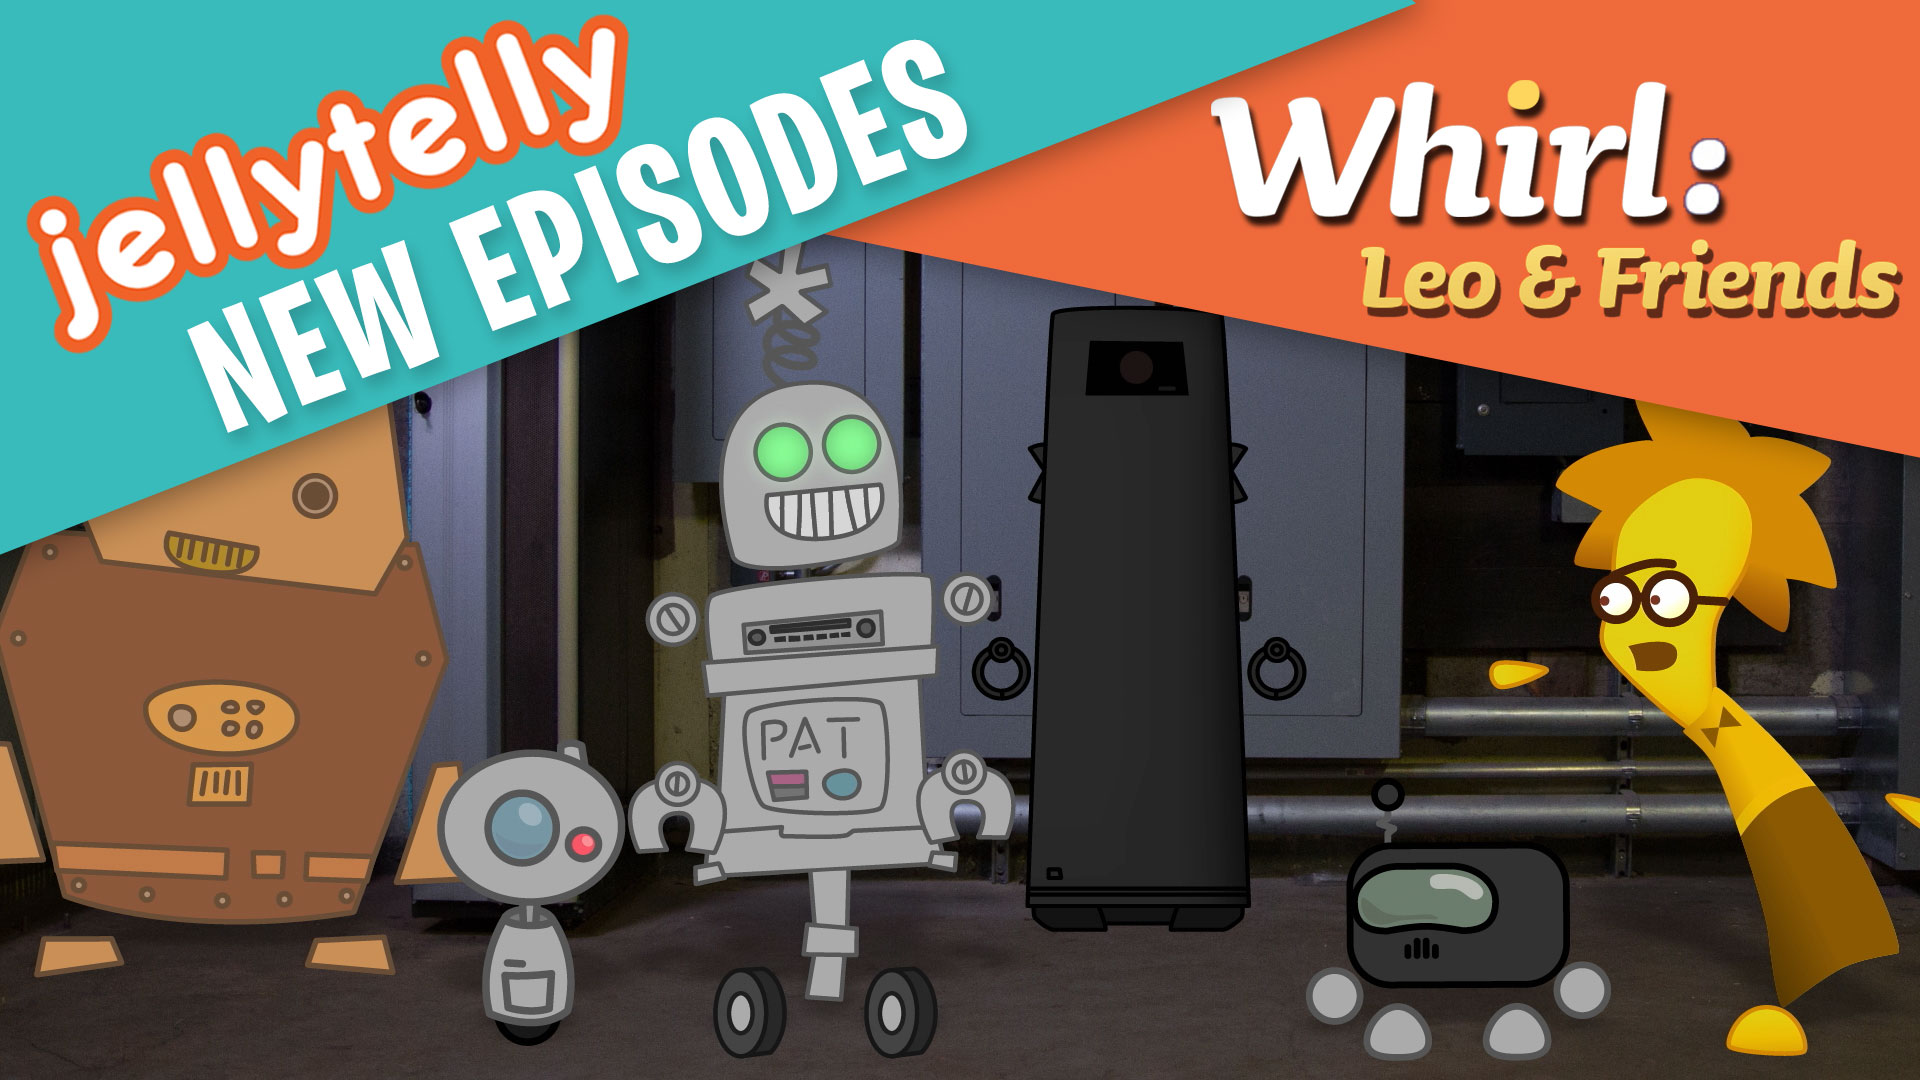 Whirl leo v3 ep14 featured preview image